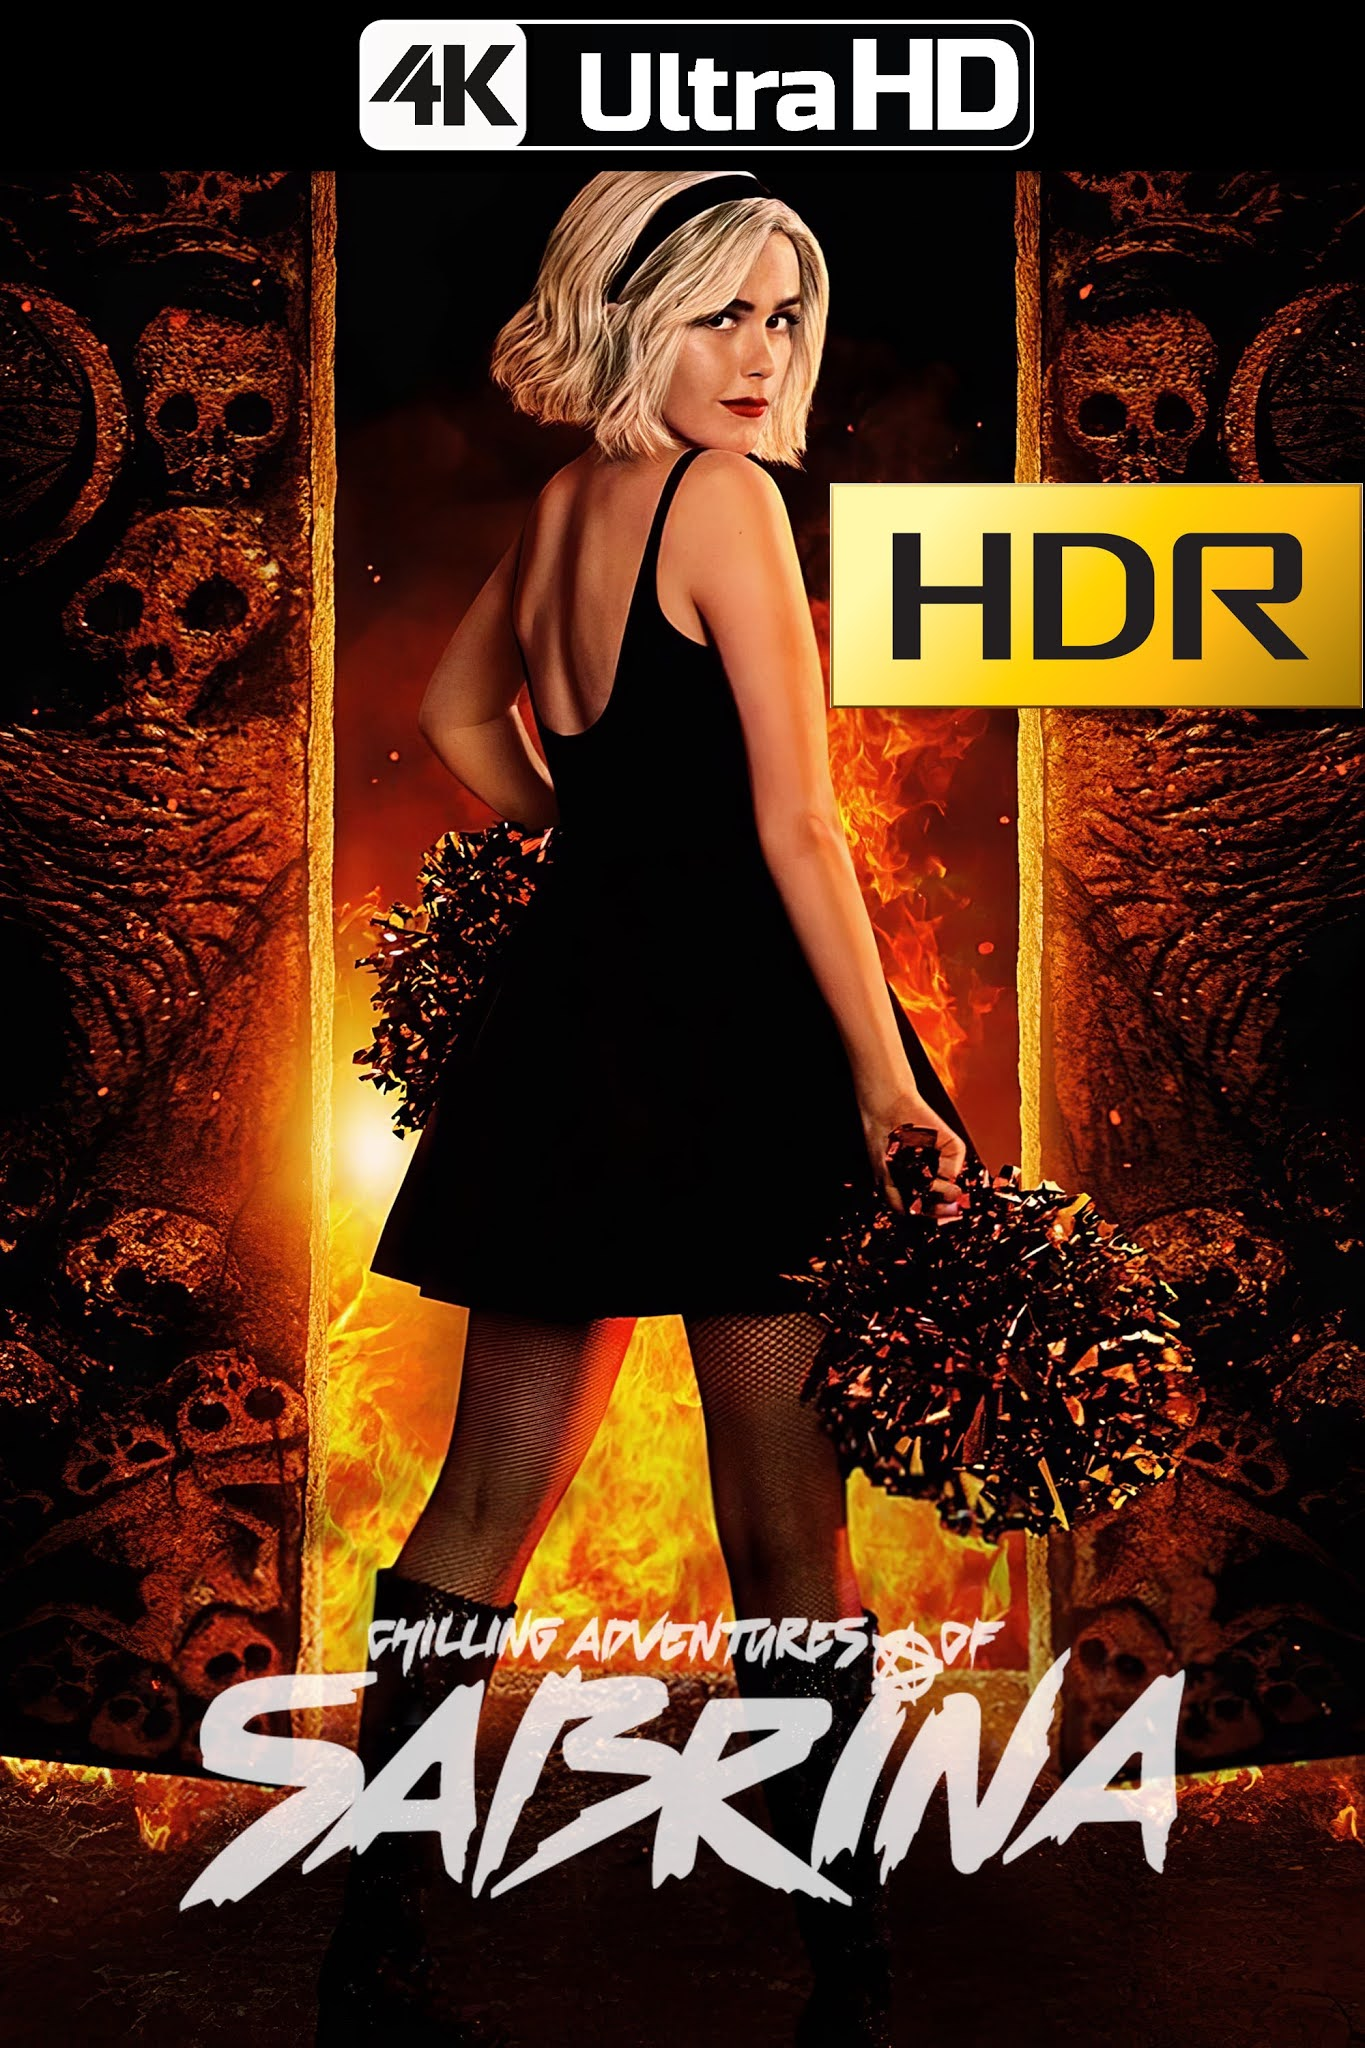 Chilling Adventures of Sabrina (2020) Temporada 02/Parte 03 NF WEBRip 4K UHD HDR Latino